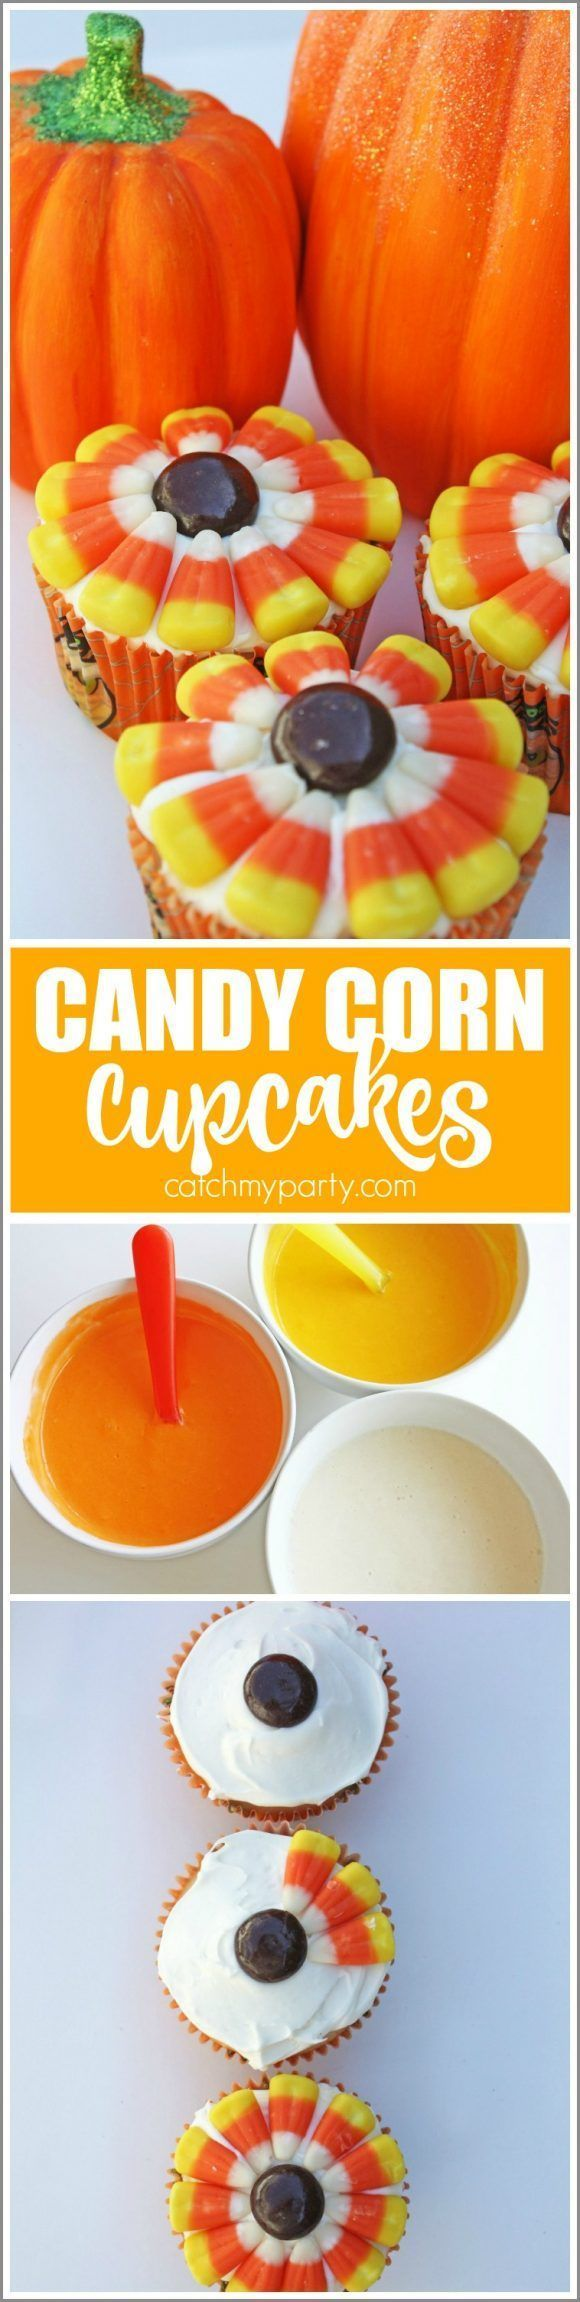 Fall Candy Corn Cupcakes | CatchMyParty.com